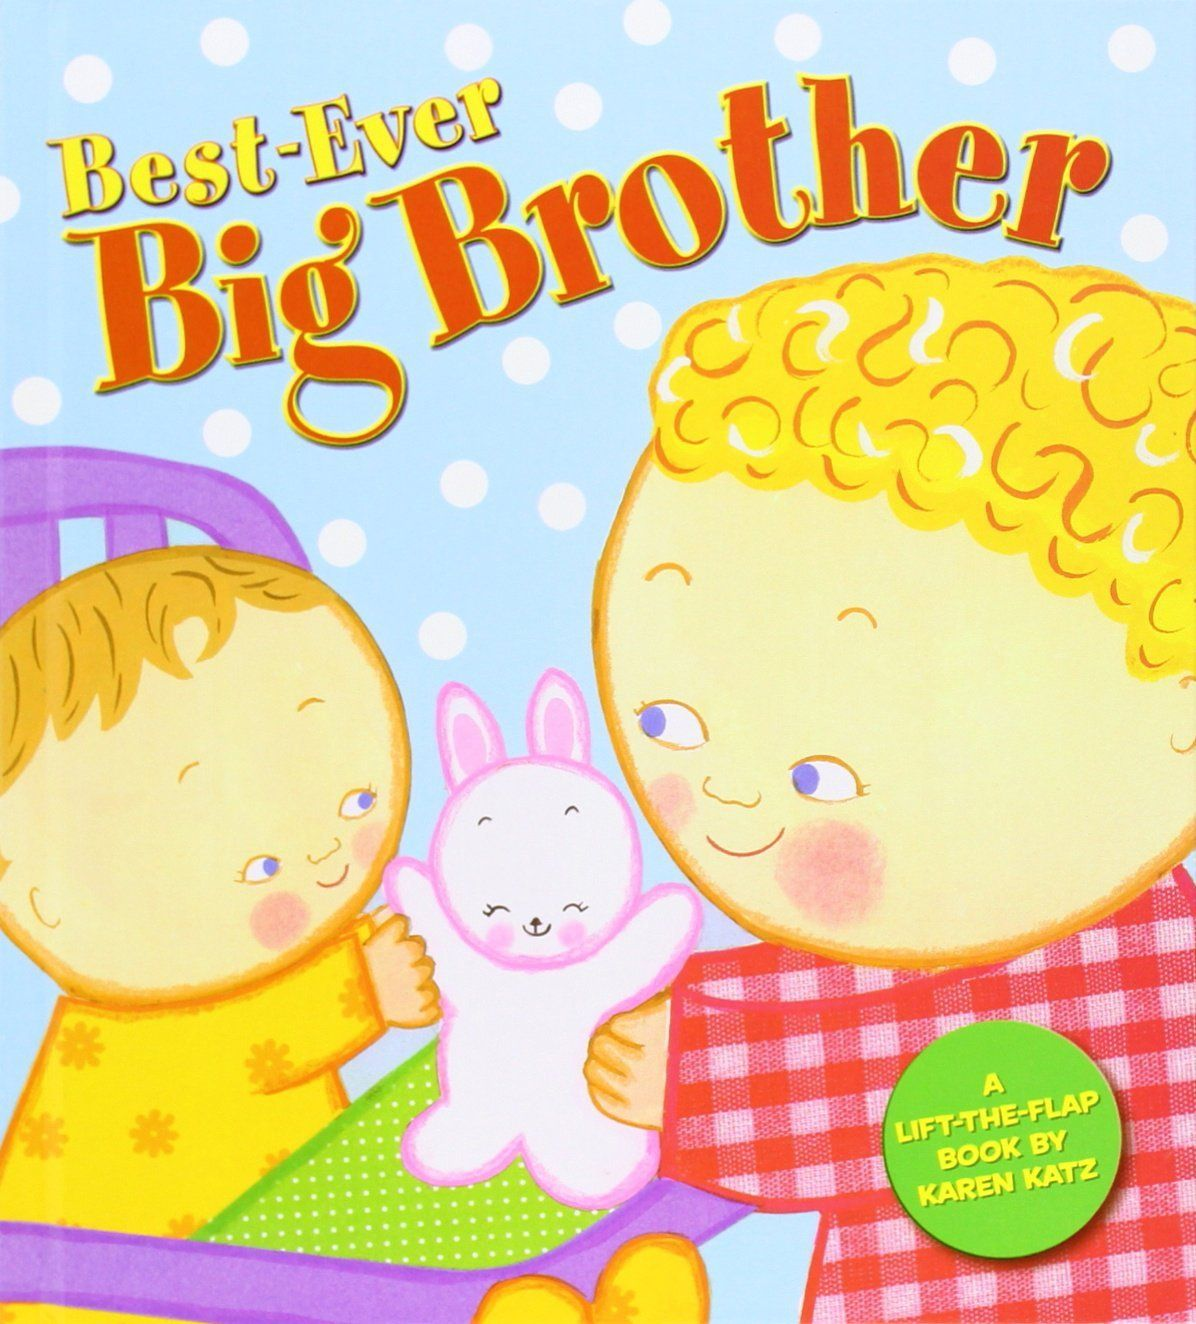 Best Ever Big Brother